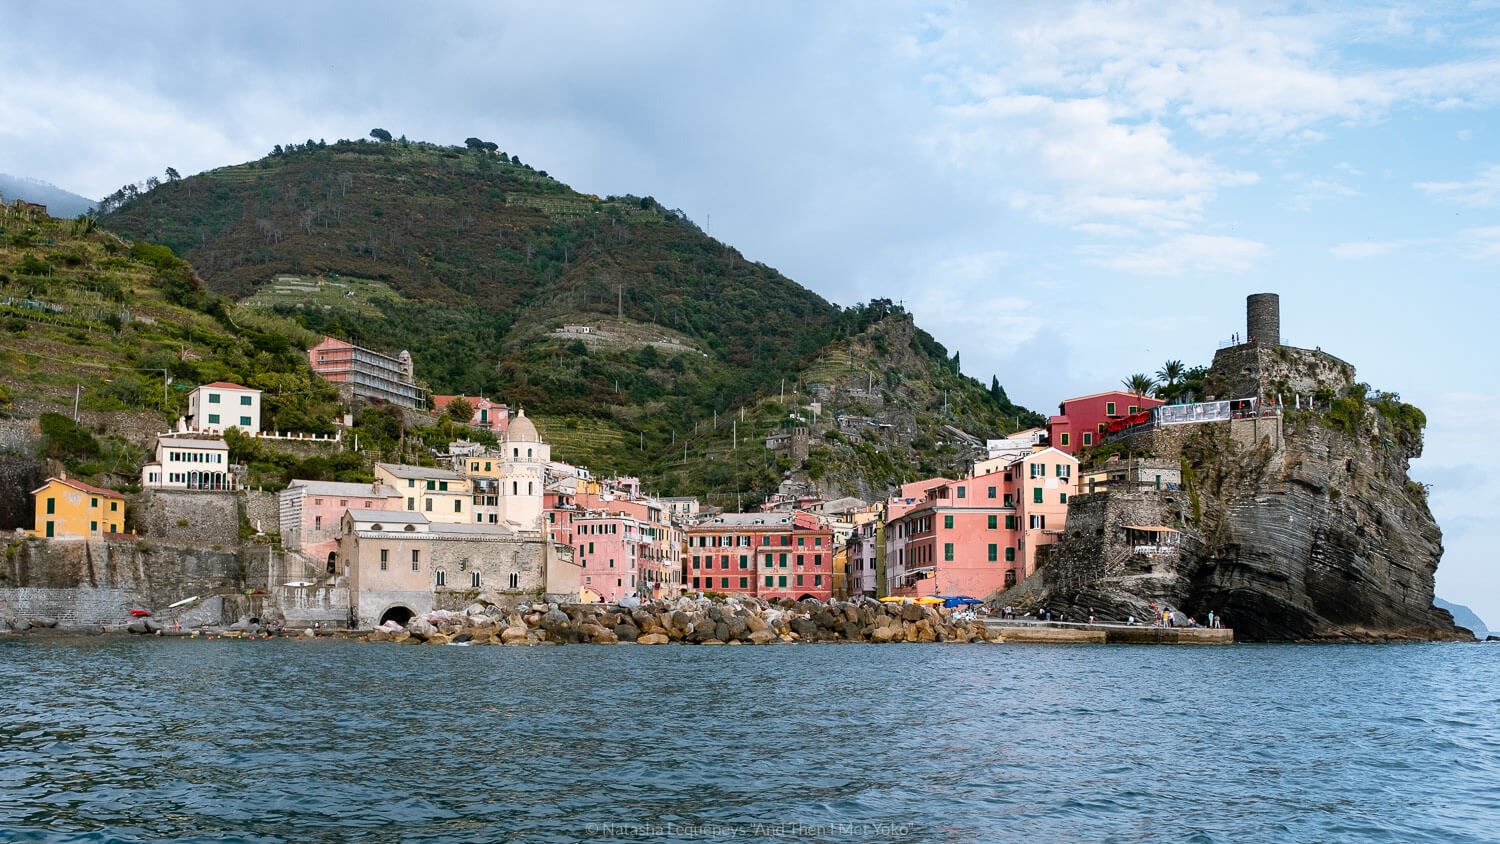 """Vernazza from the water in Cinque Terre. Travel photography and guide by © Natasha Lequepeys for """"And Then I Met Yoko"""". #cinqueterre #italy #travelphotography"""